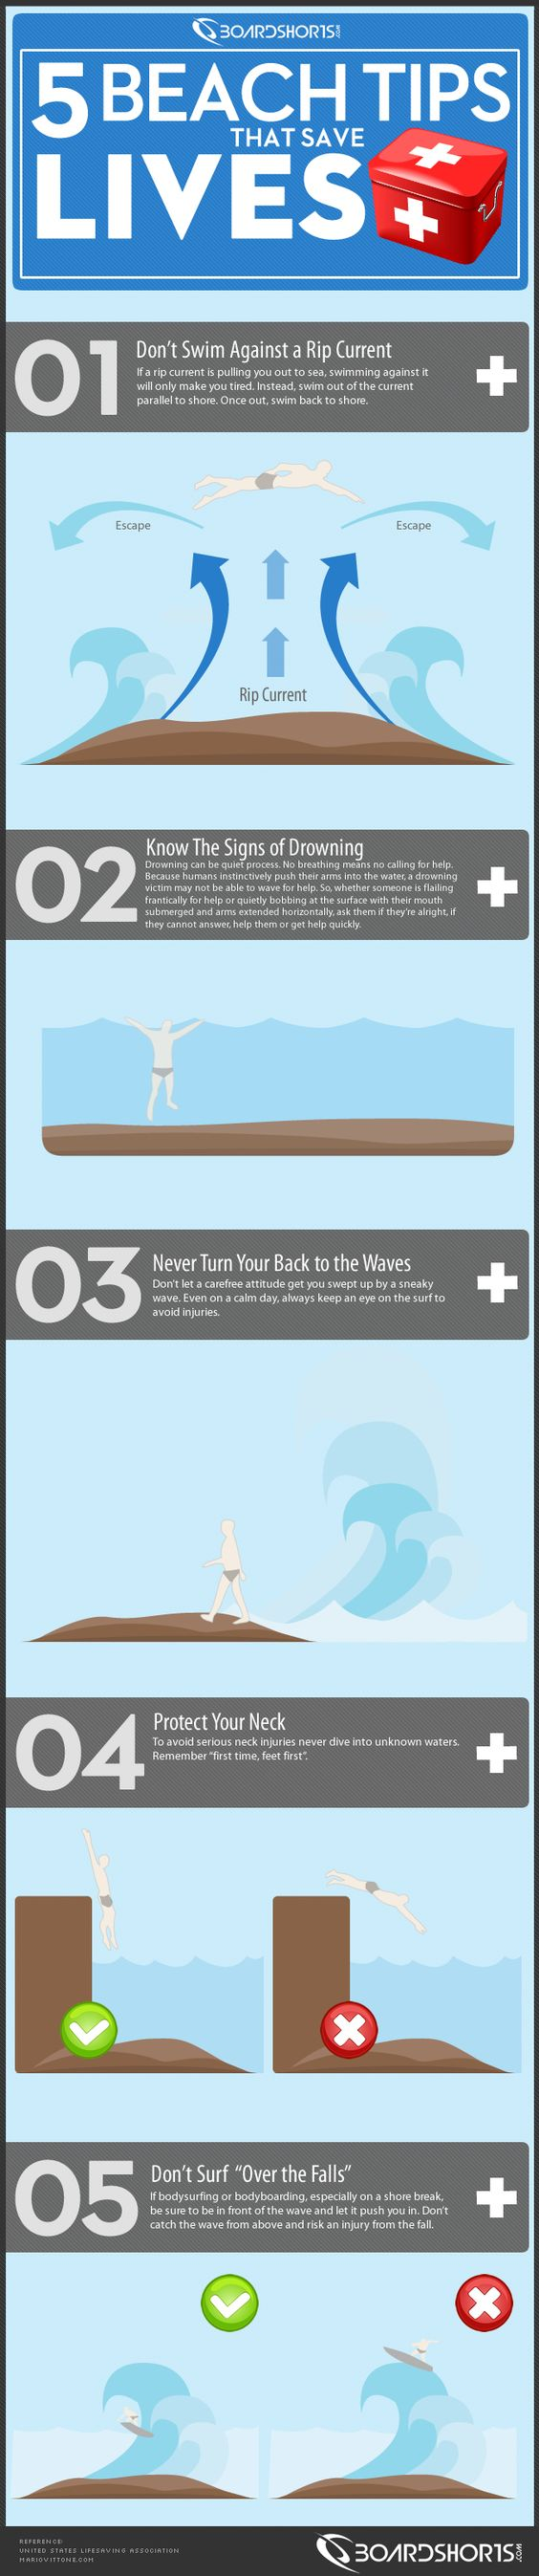 Five Beach Tips that Save Lives infographic